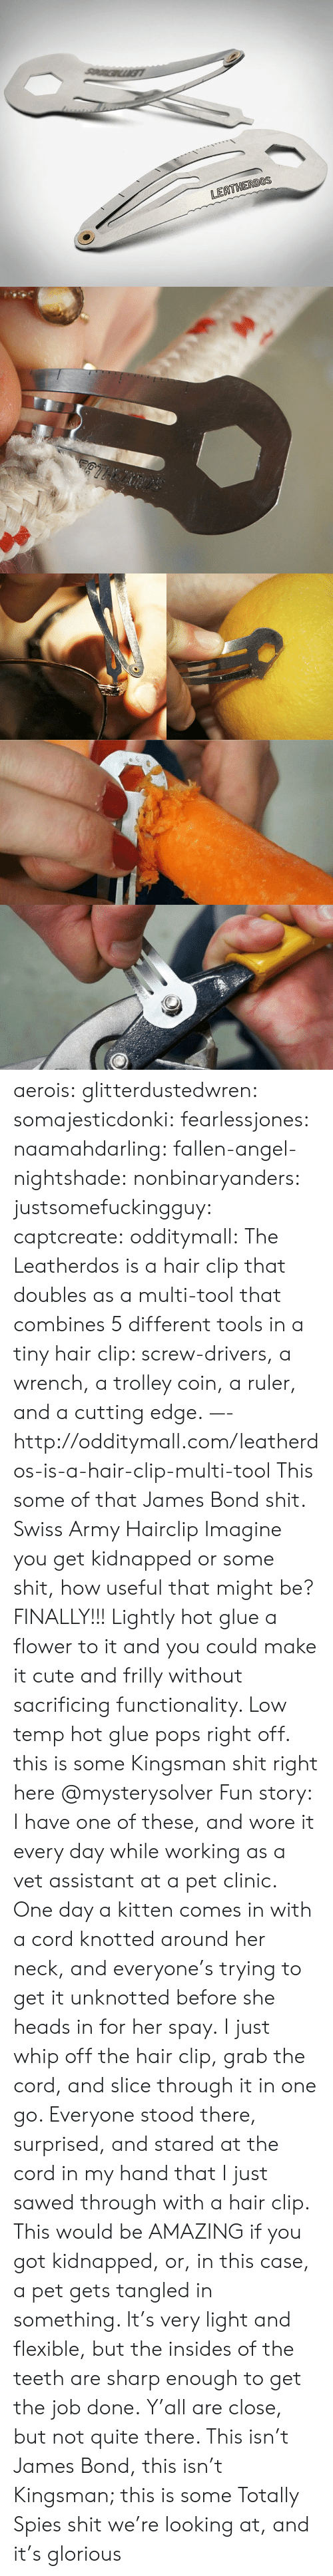 Knotted: LEATHERDOS aerois:  glitterdustedwren:  somajesticdonki:  fearlessjones:  naamahdarling:  fallen-angel-nightshade:  nonbinaryanders:  justsomefuckingguy:  captcreate:  odditymall:  The Leatherdos is a hair clip that doubles as a multi-tool that combines 5 different tools in a tiny hair clip: screw-drivers, a wrench, a trolley coin, a ruler, and a cutting edge. —-http://odditymall.com/leatherdos-is-a-hair-clip-multi-tool  This some of that James Bond shit.  Swiss Army Hairclip  Imagine you get kidnapped or some shit, how useful that might be?  FINALLY!!!   Lightly hot glue a flower to it and you could make it cute and frilly without sacrificing functionality. Low temp hot glue pops right off.   this is some Kingsman shit right here   @mysterysolver  Fun story: I have one of these, and wore it every day while working as a vet assistant at a pet clinic. One day a kitten comes in with a cord knotted around her neck, and everyone's trying to get it unknotted before she heads in for her spay. I just whip off the hair clip, grab the cord, and slice through it in one go. Everyone stood there, surprised, and stared at the cord in my hand that I just sawed through with a hair clip.  This would be AMAZING if you got kidnapped, or, in this case, a pet gets tangled in something. It's very light and flexible, but the insides of the teeth are sharp enough to get the job done.  Y'all are close, but not quite there. This isn't James Bond, this isn't Kingsman; this is some Totally Spies shit we're looking at, and it's glorious